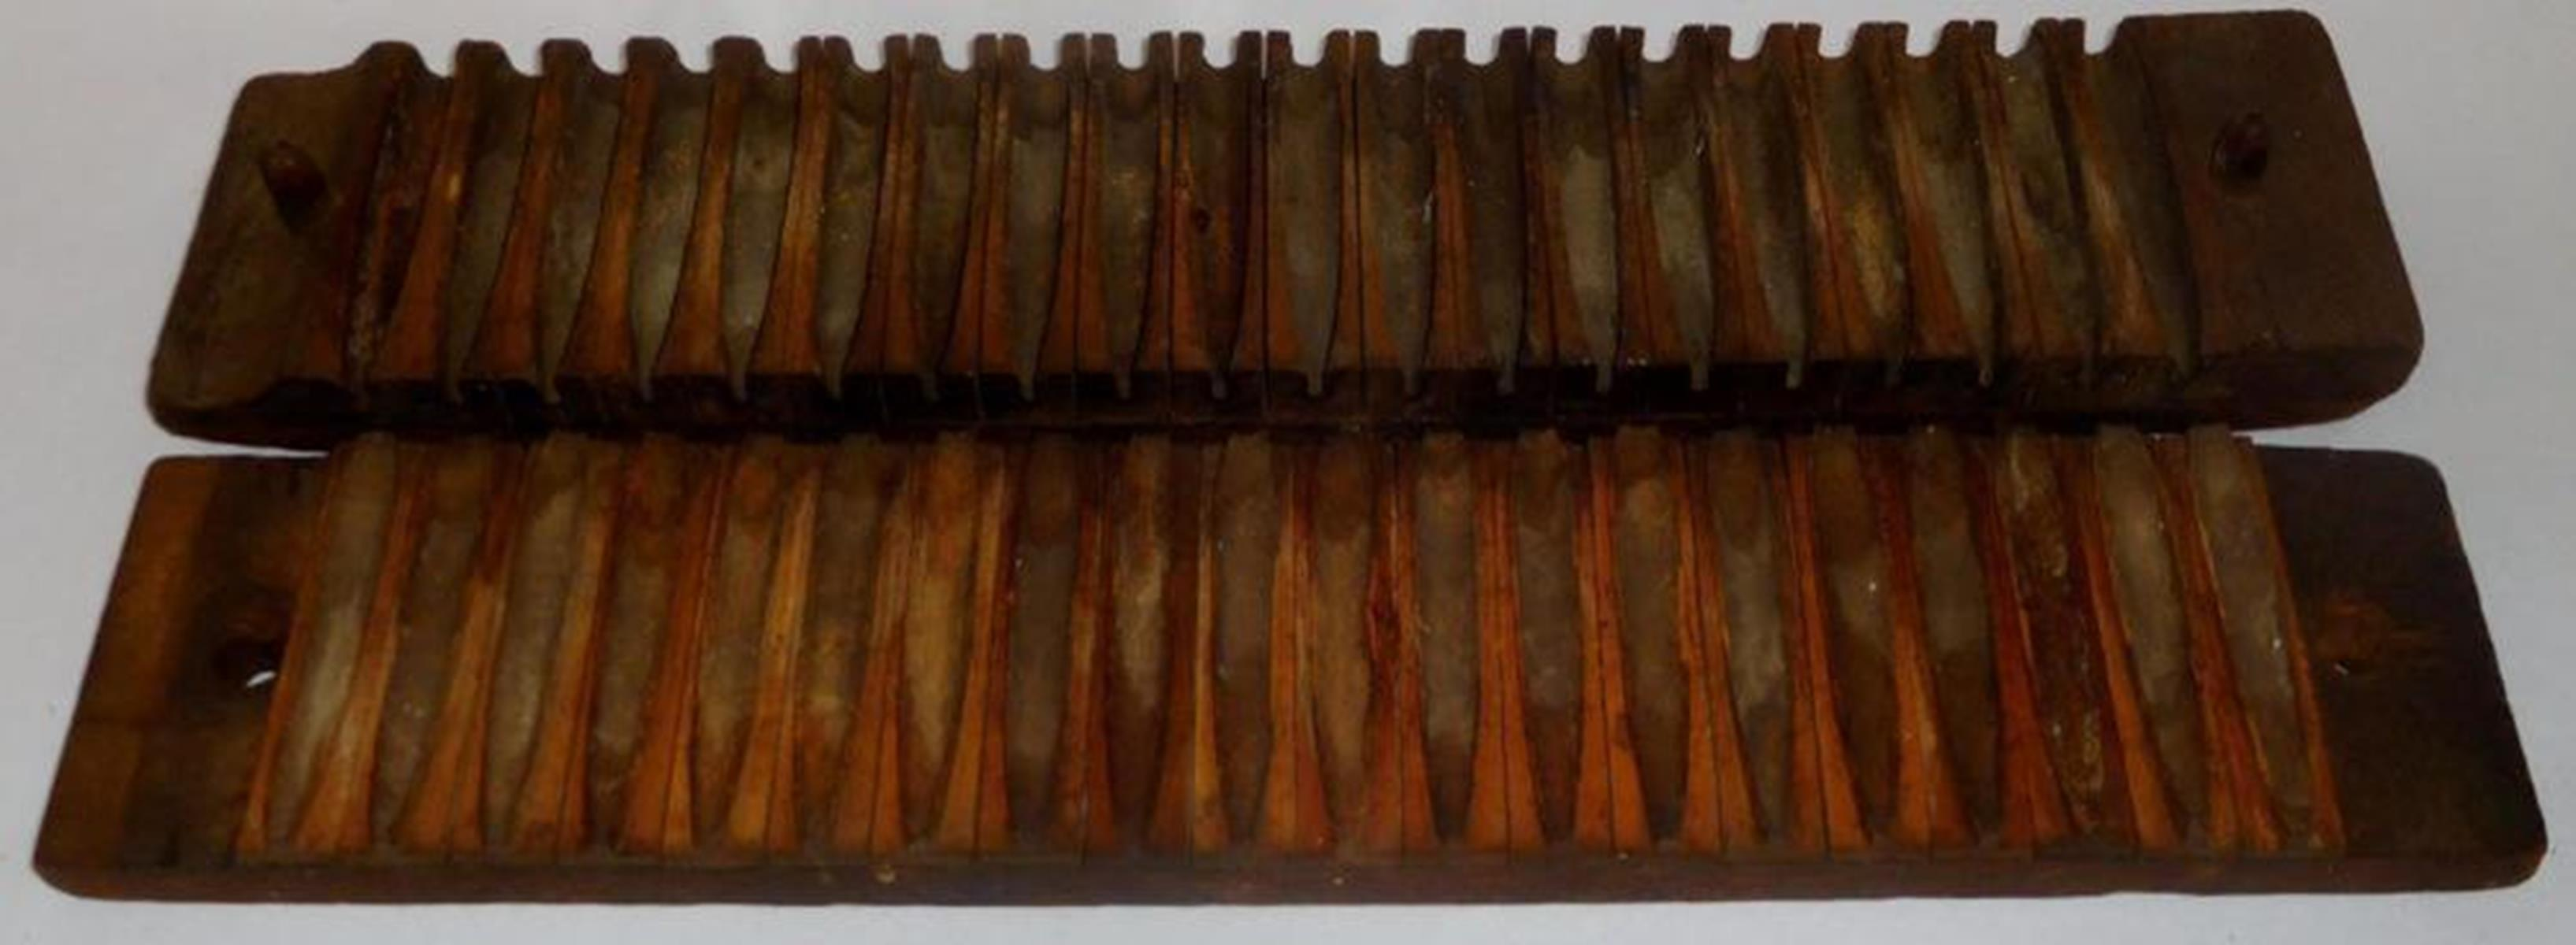 Antique Late 1800's Wooden Unmarked 20 Section Cigar Mold